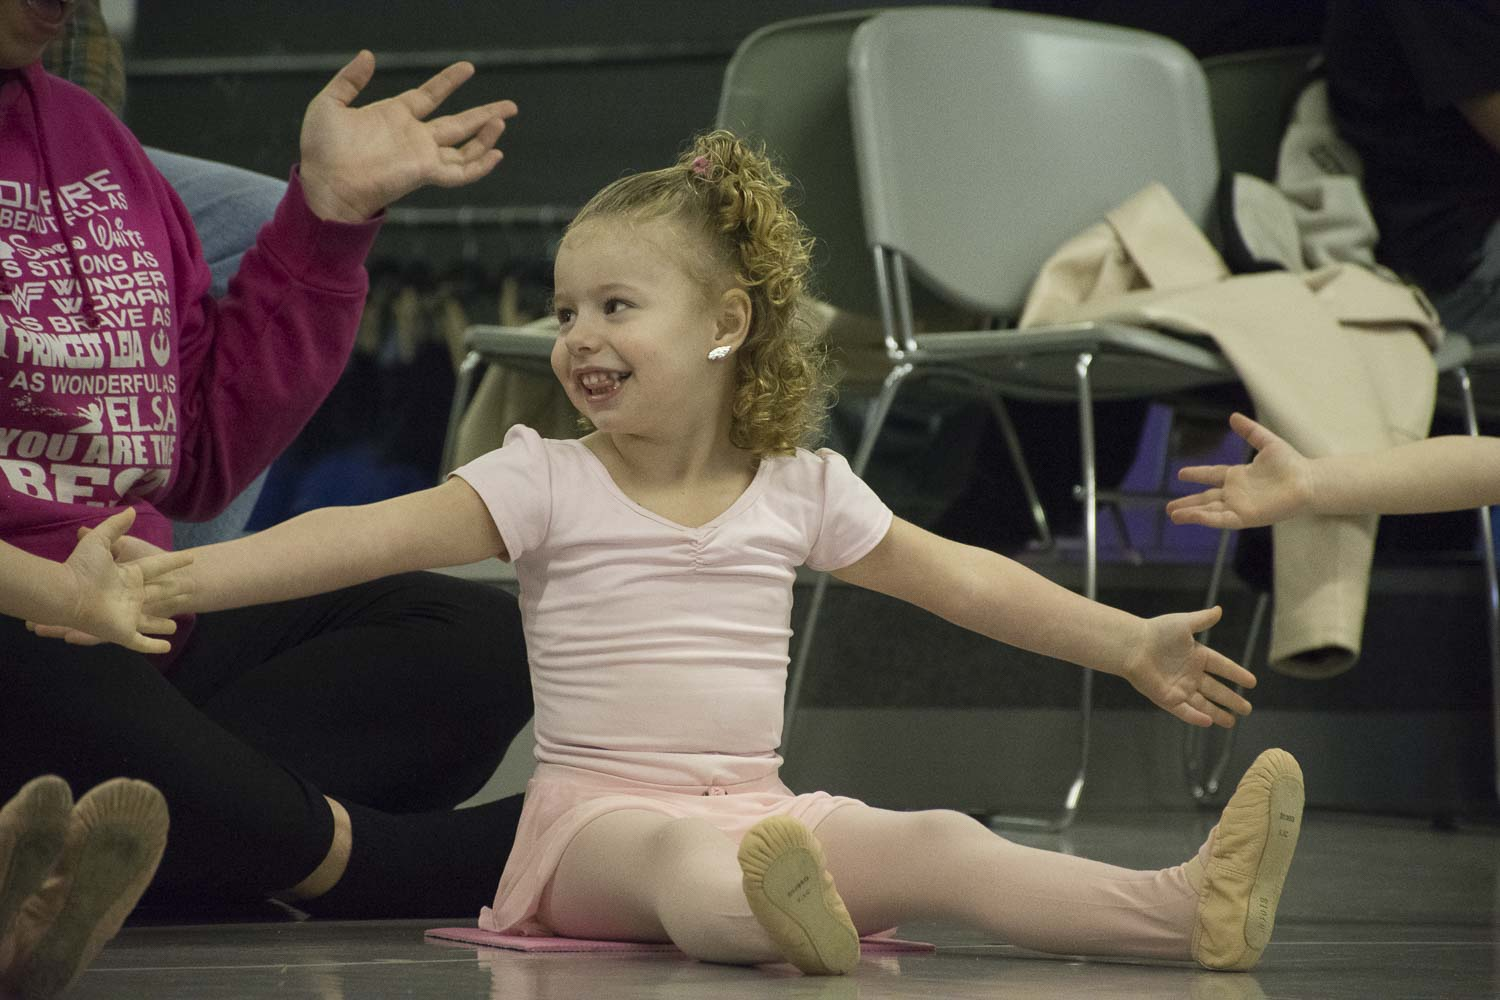 I thought dancing would be a great way for my girl to channel her energy. She is quite the opposite in class, more relaxed and just taking it all in. I love seeing this side of my little girl.